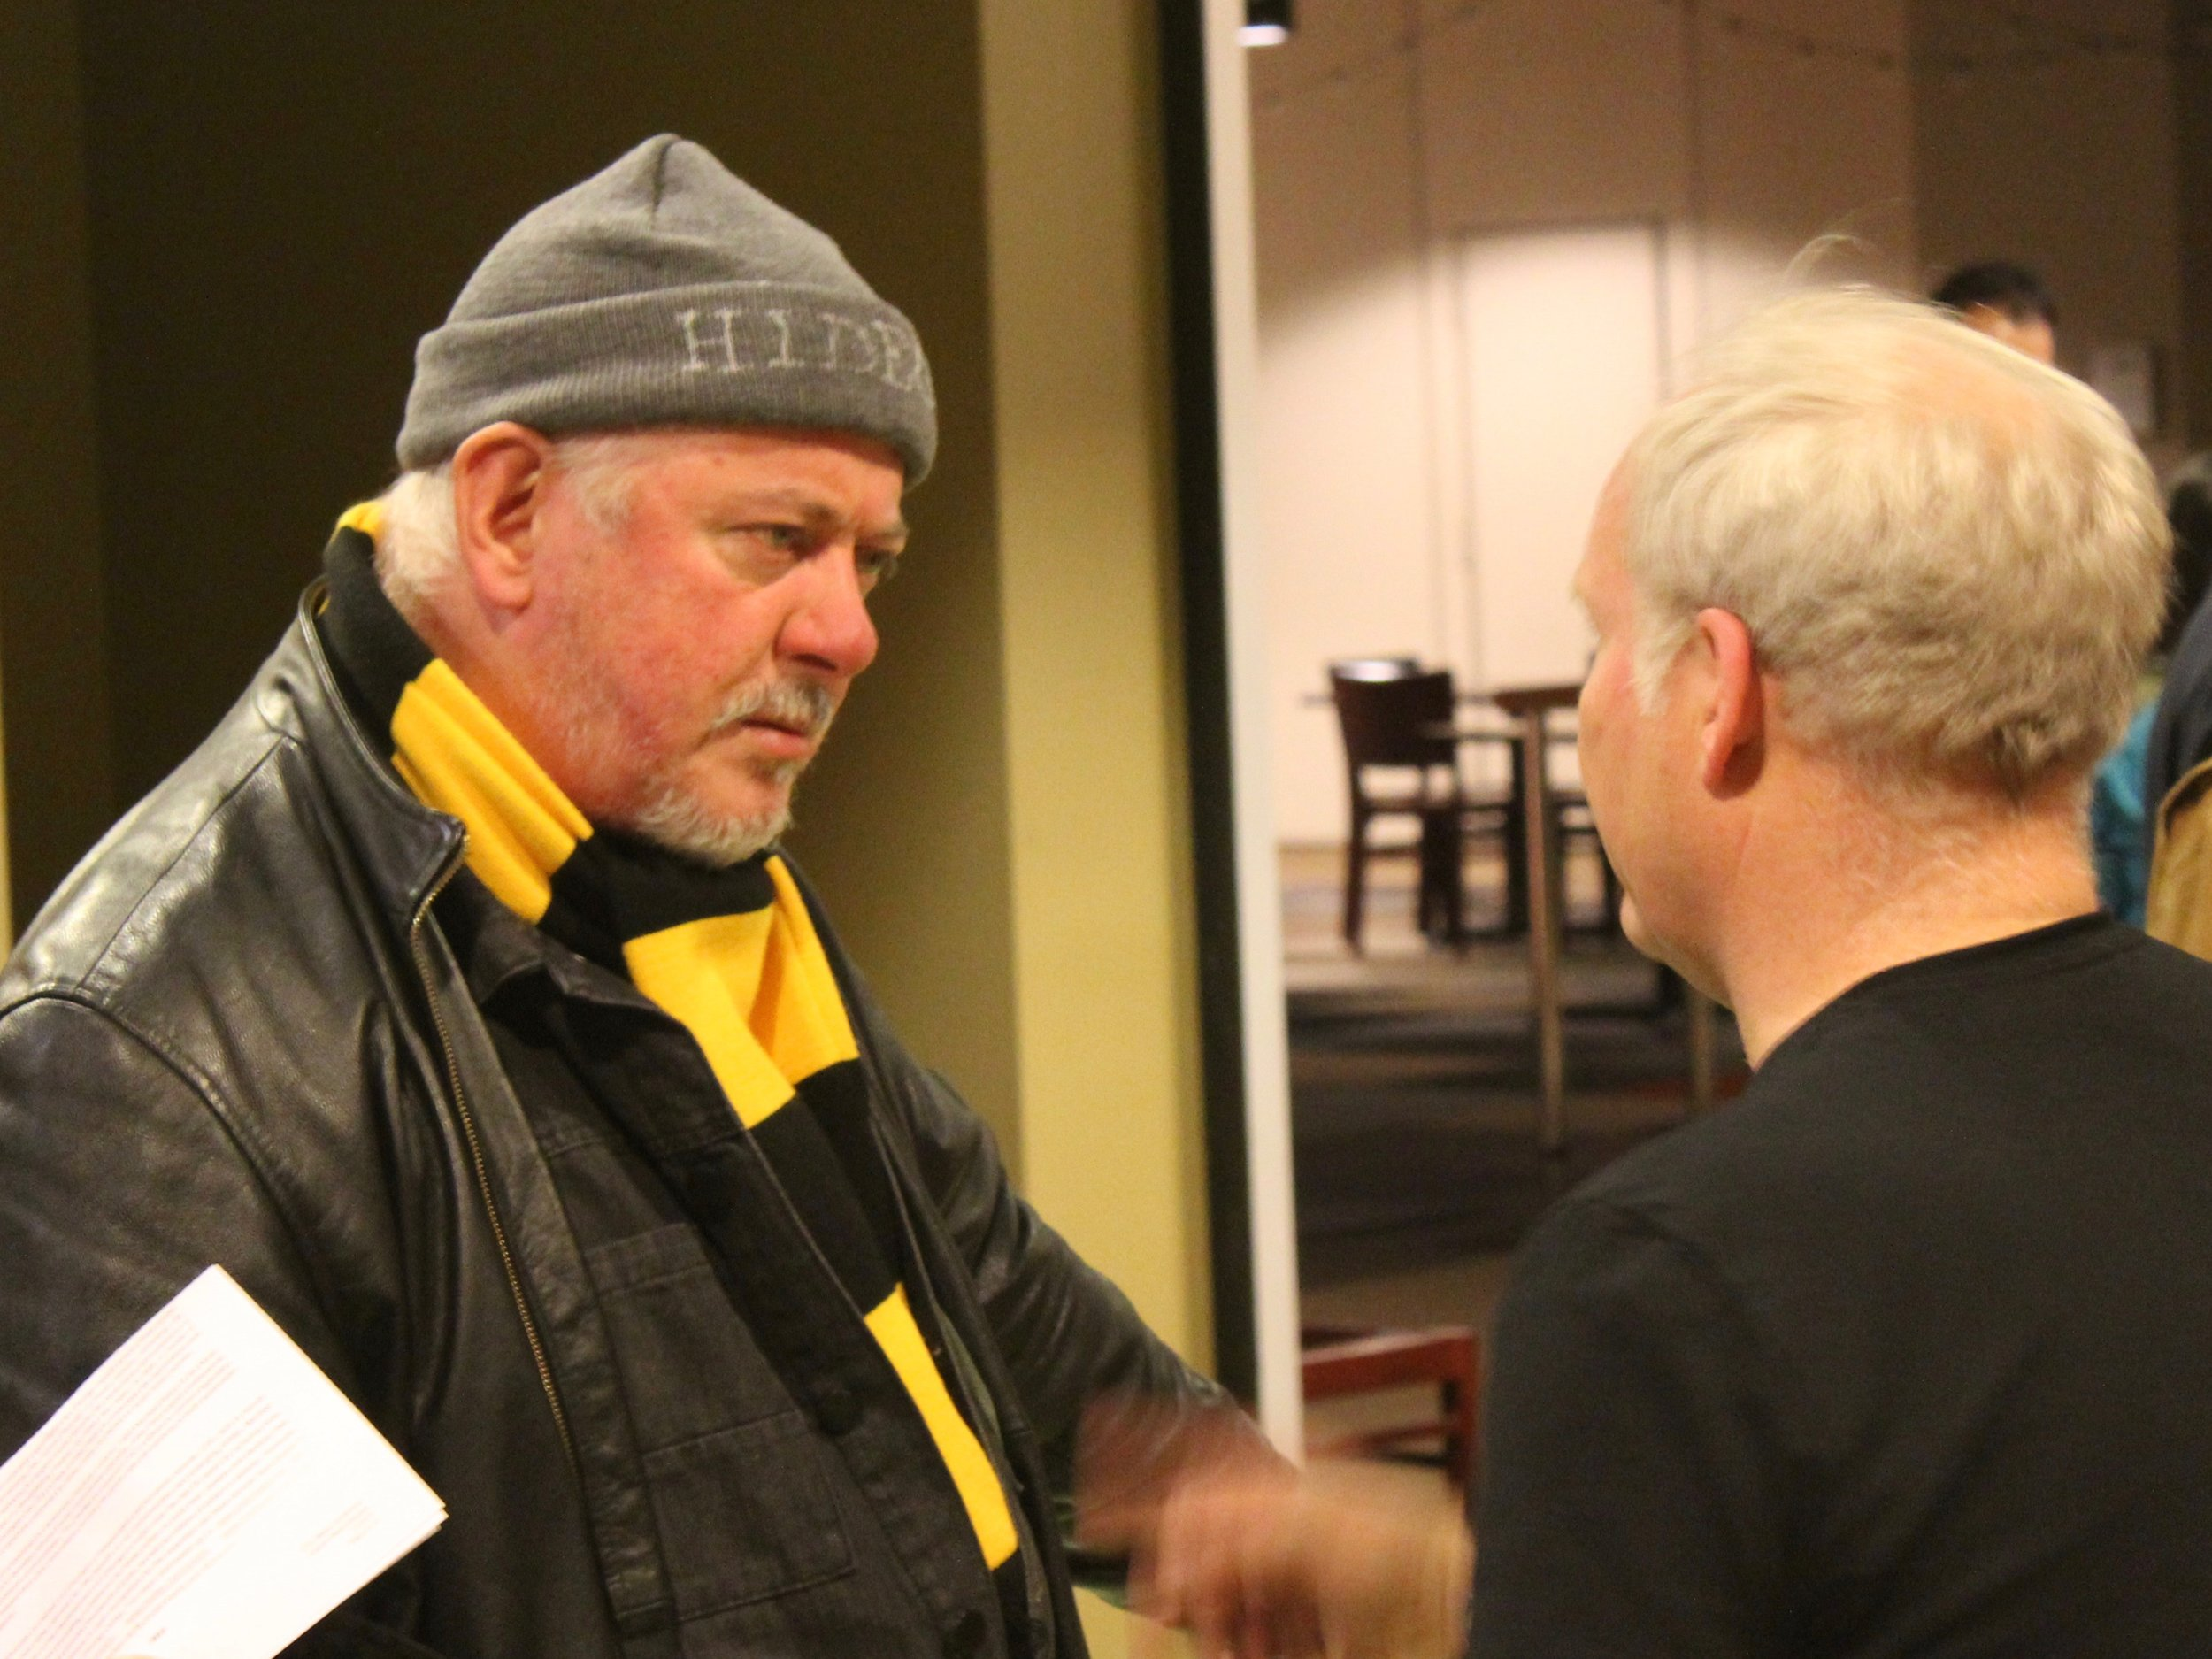 Jon Langford talks with Hideout owner Tim Tuten at Thursday's CIVL announcement. (One Illinois/Ted Cox)